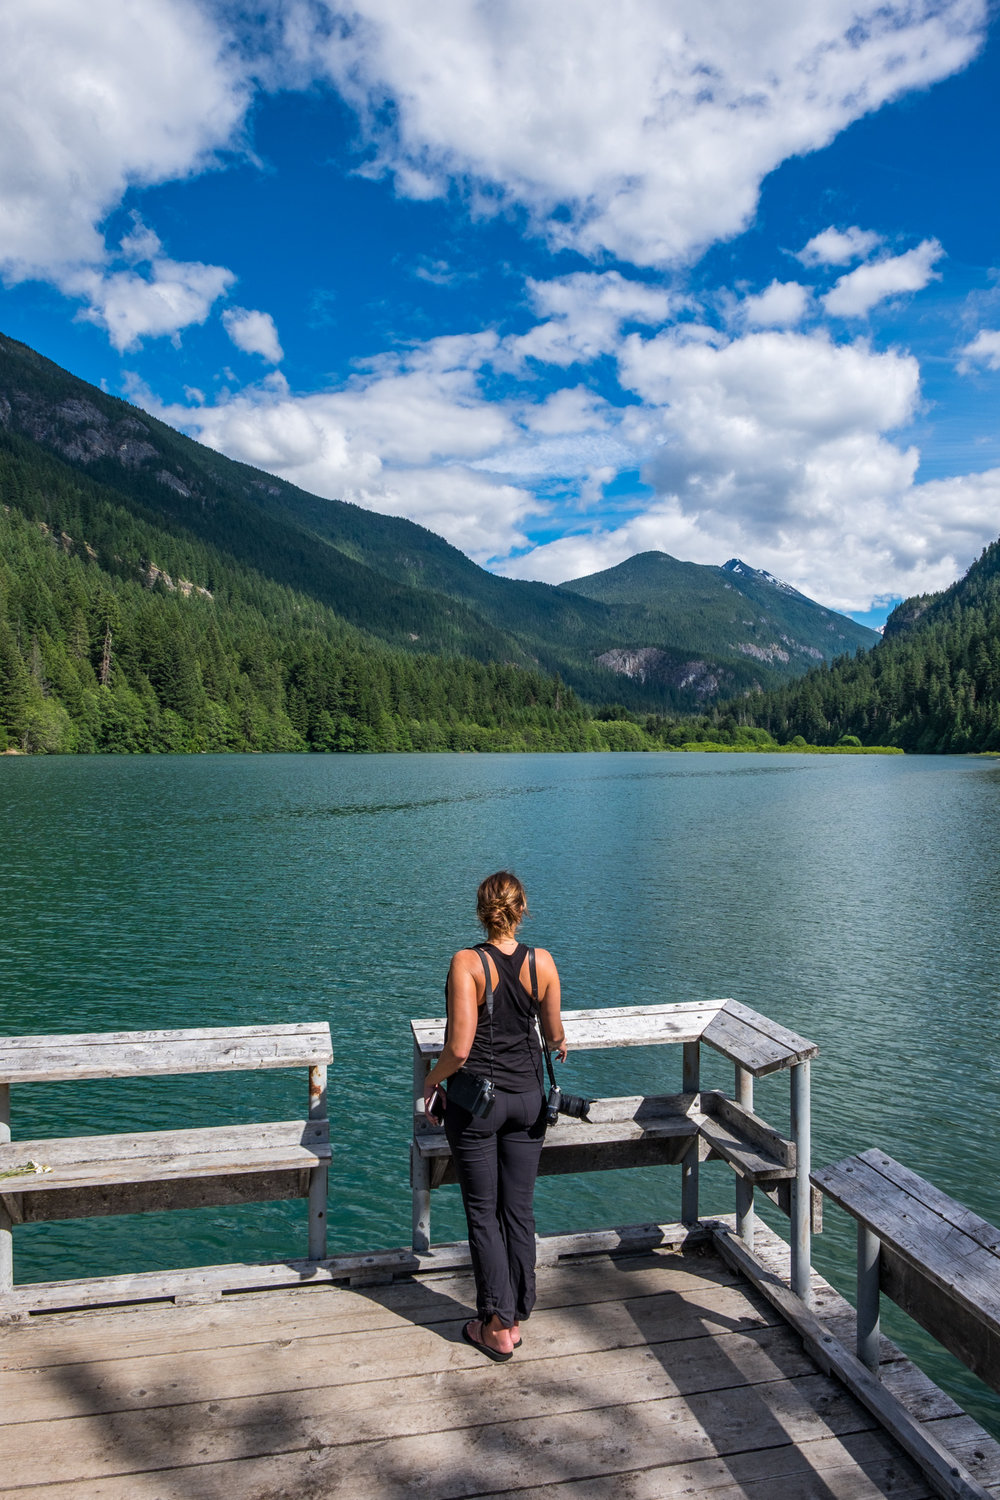 Stef checking out Diablo Lake from the Colonial Creek Campground dock.